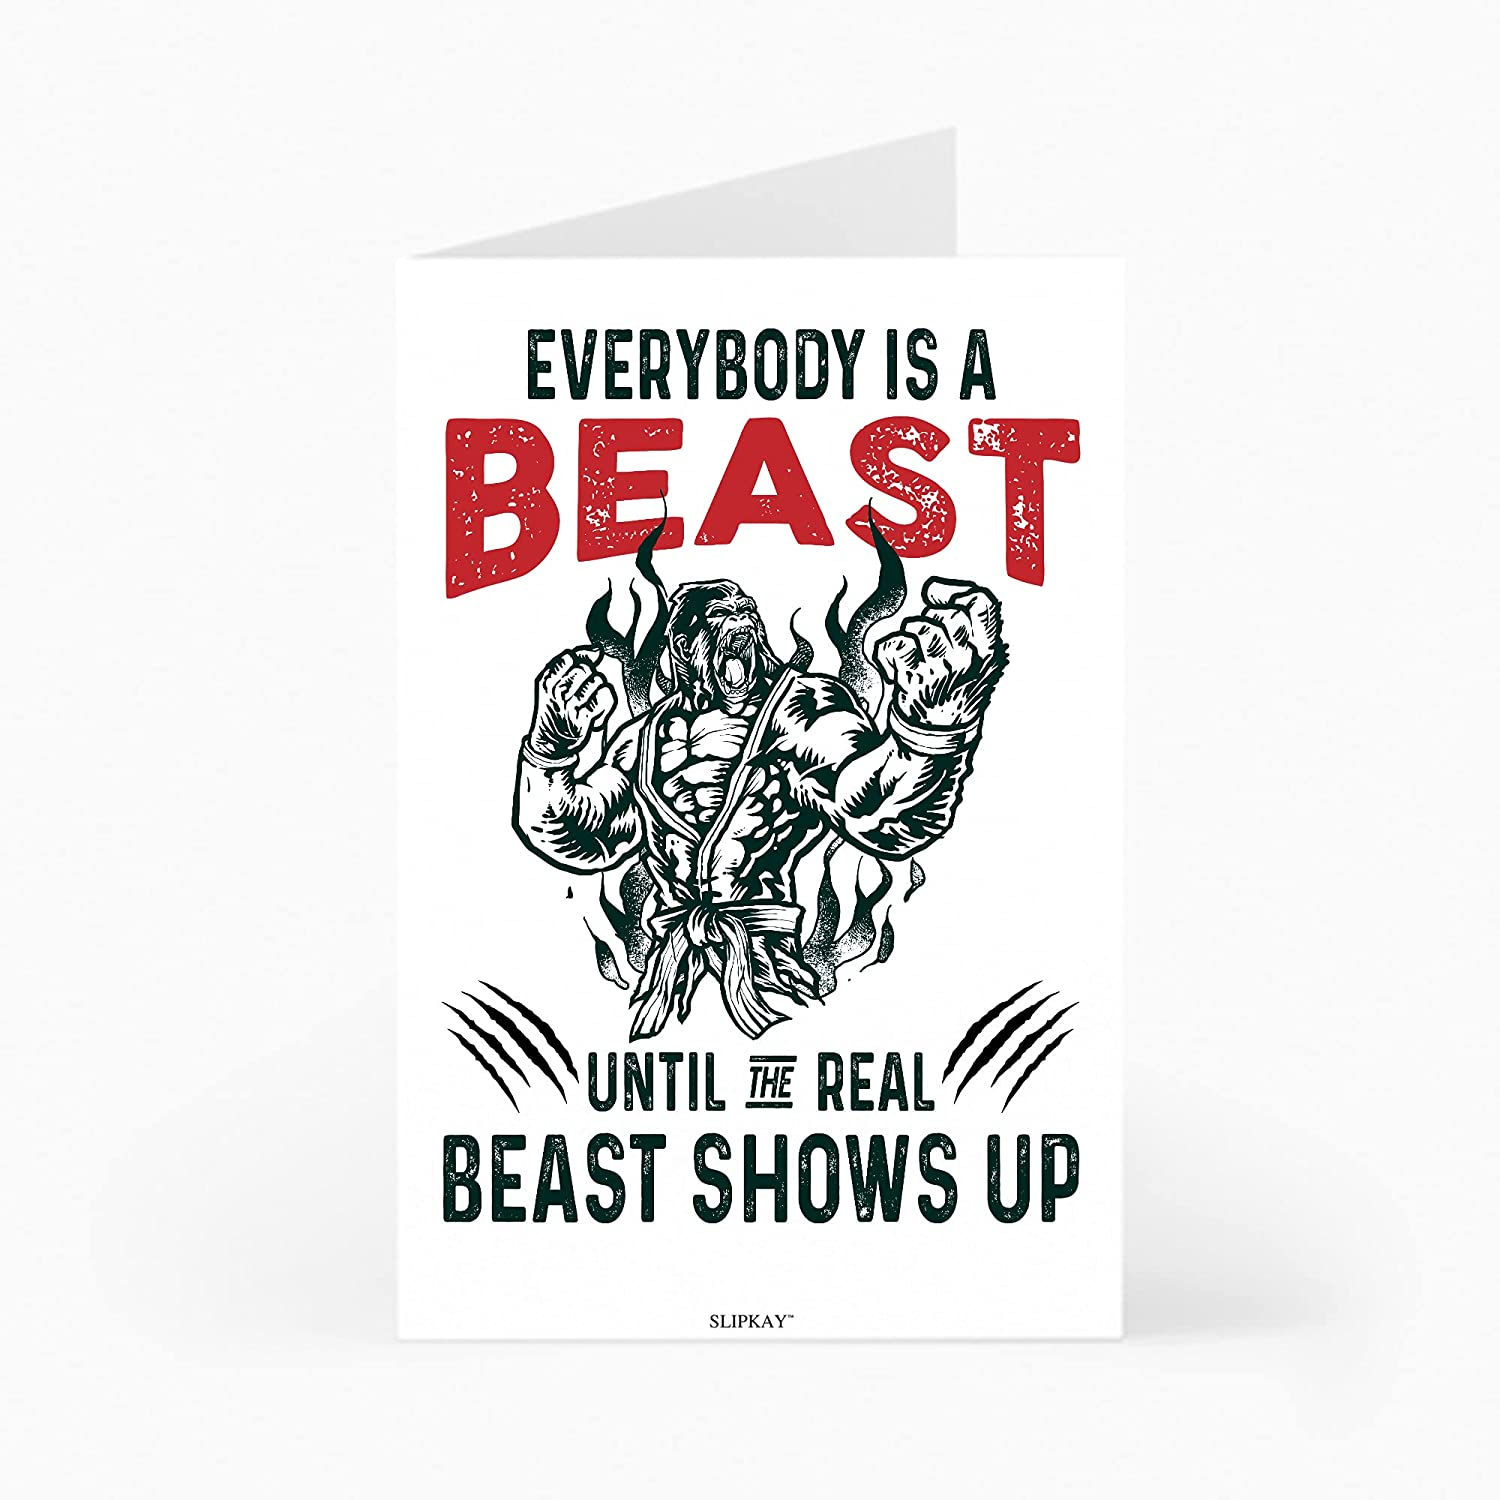 Jiu Indianapolis Mall Jitsu OFFicial shop Gorilla Everybody Is A Beast The Show Real Until